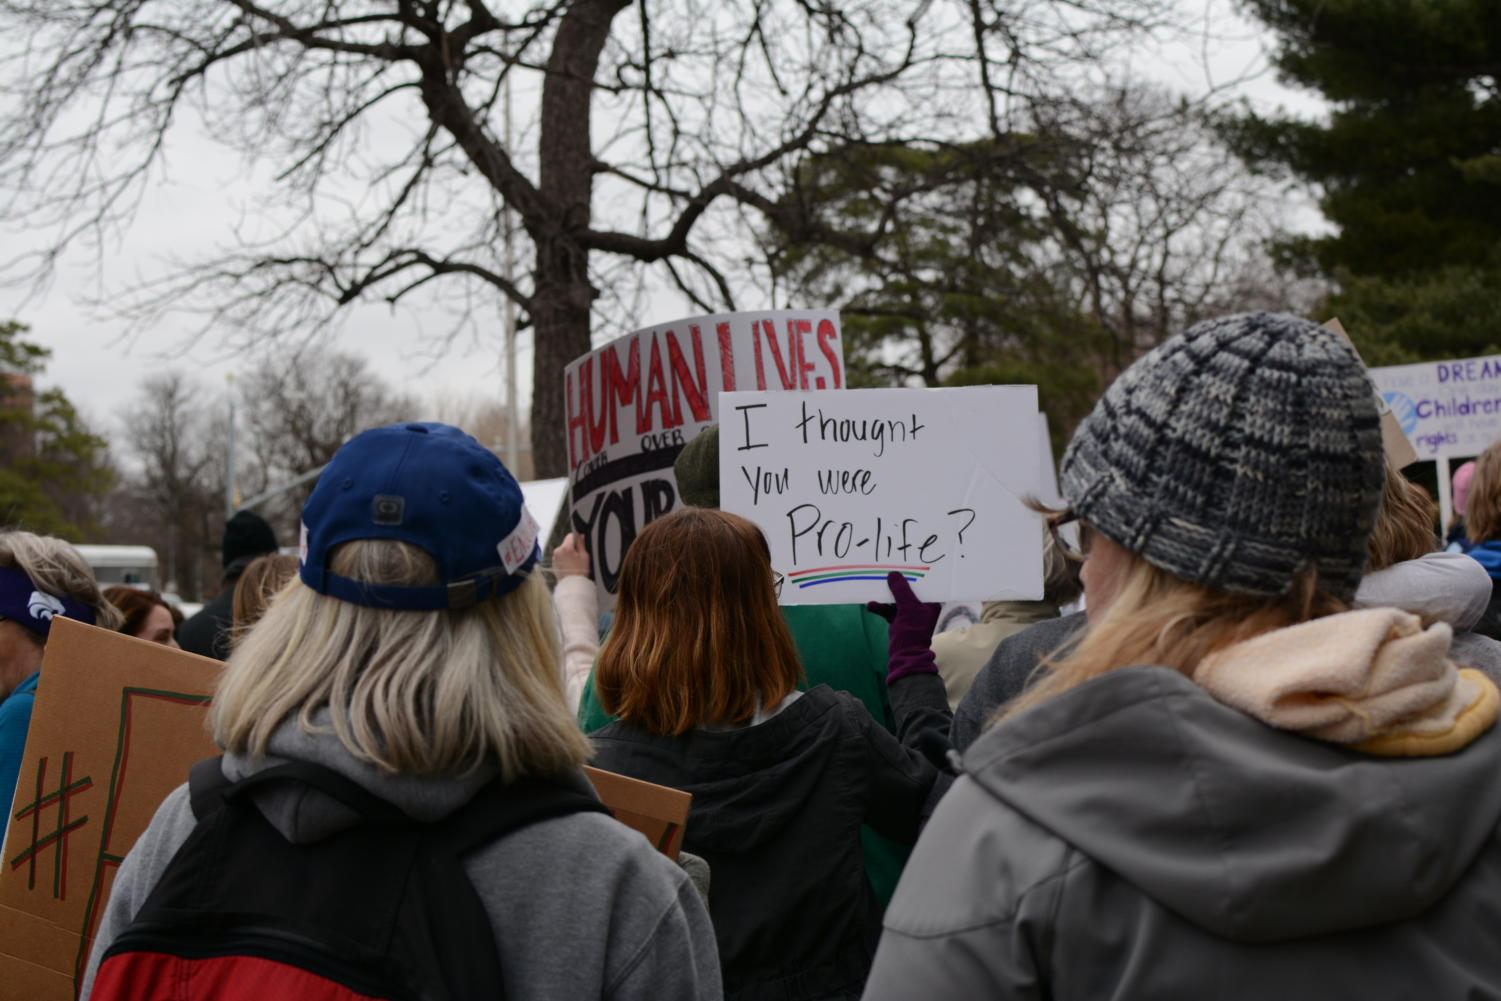 A+sign+reads+%22I+thought+you+were+pro-life%3F%22